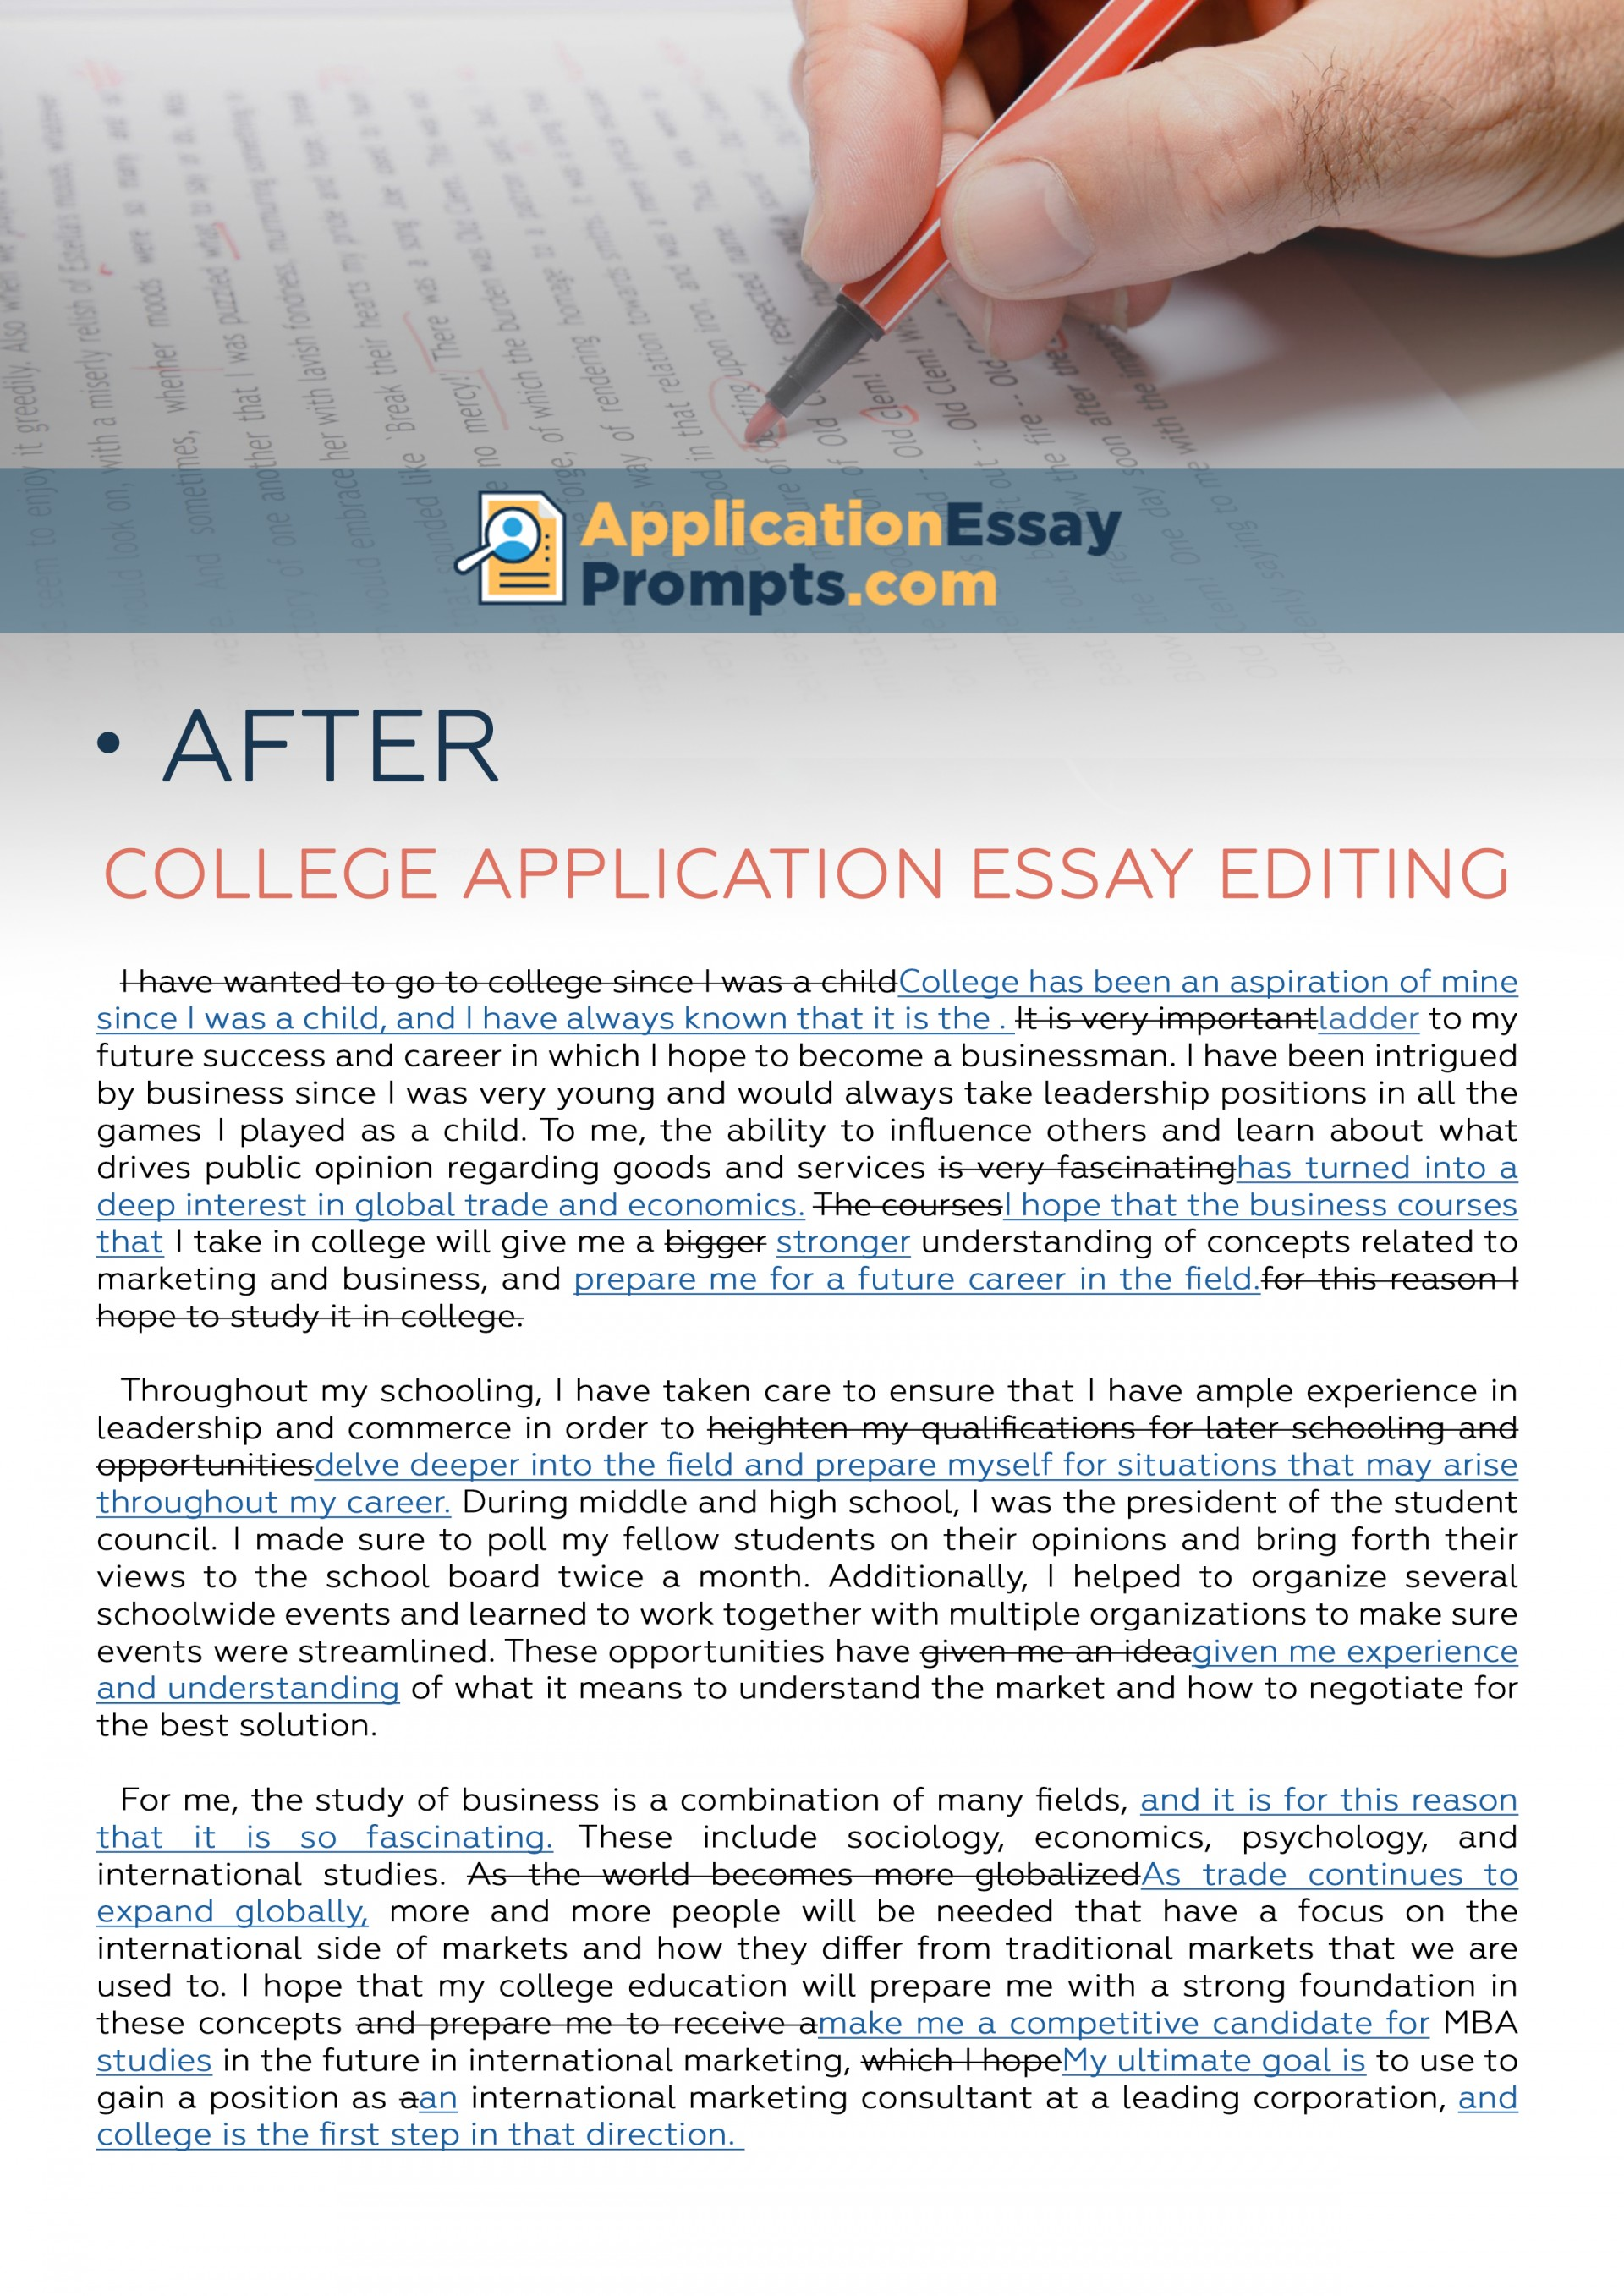 013 Essay Example Editing After College Unusual Service Application Services Free 1920